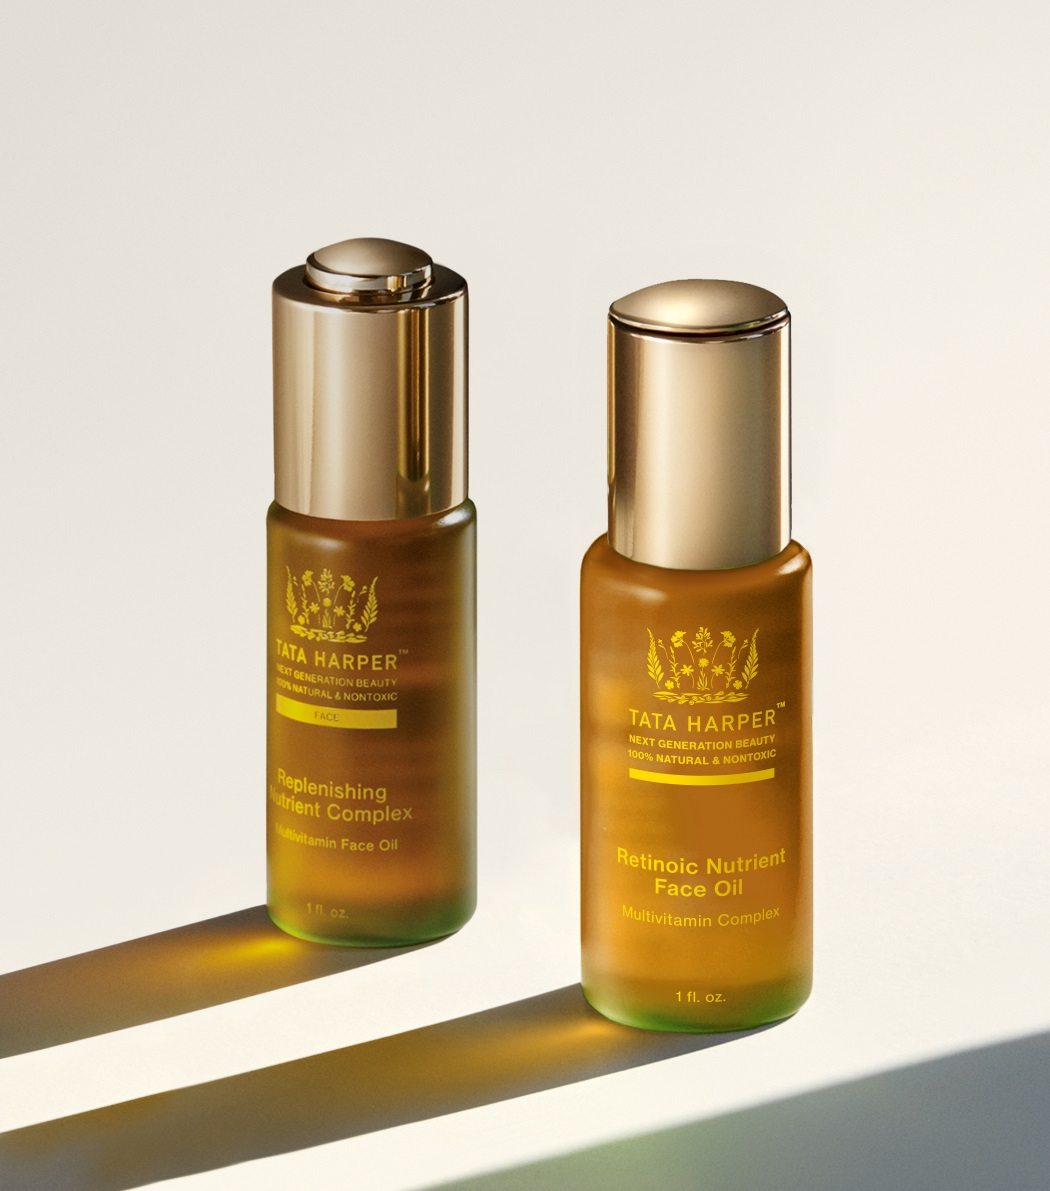 Tata Harper, Retinoic Nutrient Face Oil